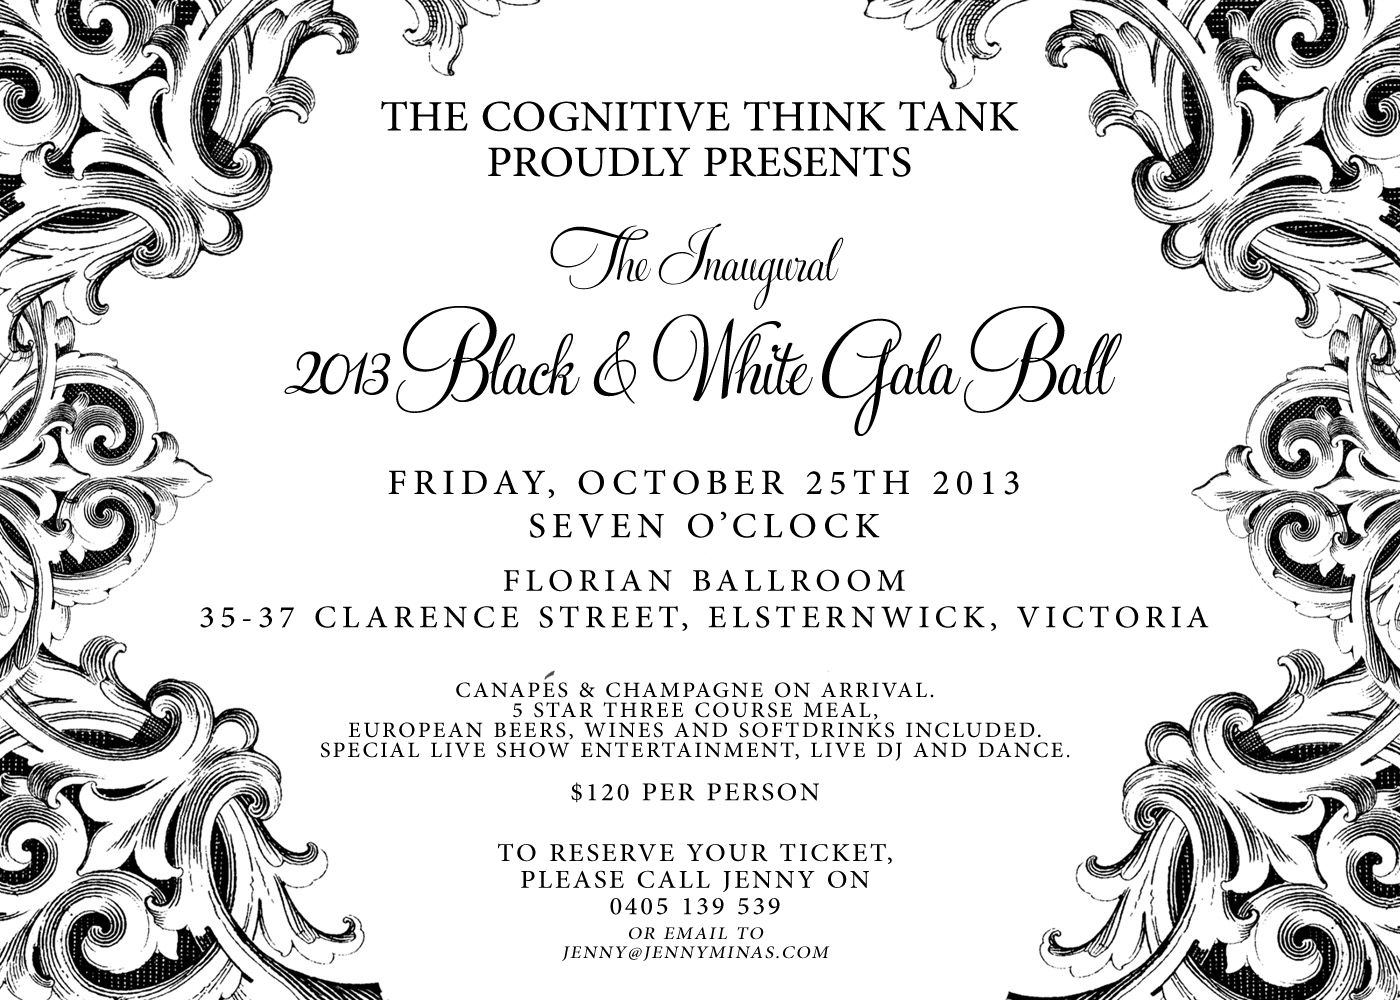 ideas for gala dinner ideas gala invitation ideas for gala dinner ideas gala invitation 50th